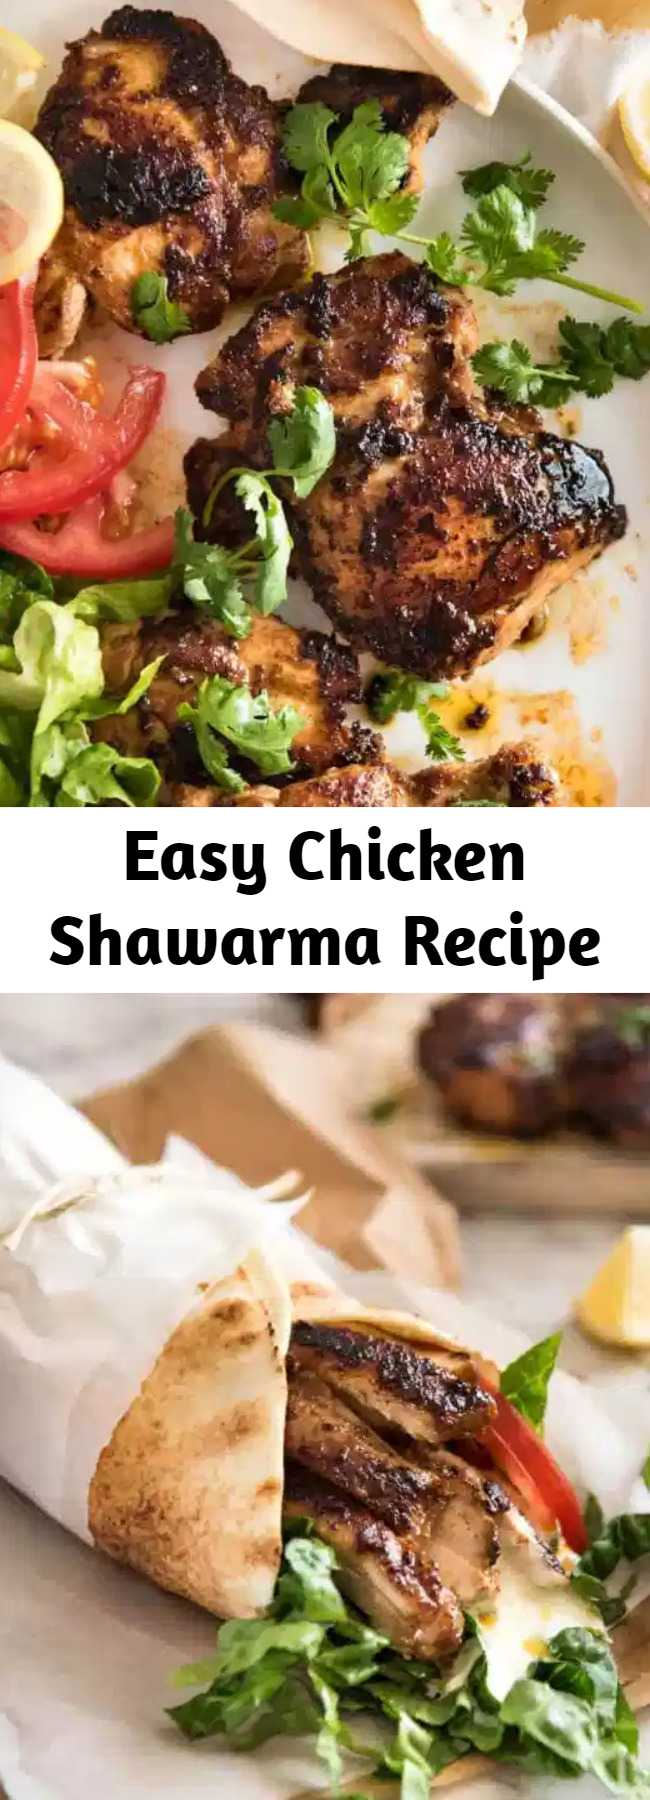 Easy Chicken Shawarma Recipe - This Middle Eastern chicken is incredibly aromatic. The marinade is very quick to prepare and the chicken can be frozen in the marinade, then defrosted prior to cooking. It is best cooked on the outdoor grill / BBQ, but I usually make it on the stove. Serve with a simple salad and flatbread laid out on a large platter and let your guests make their own wraps.